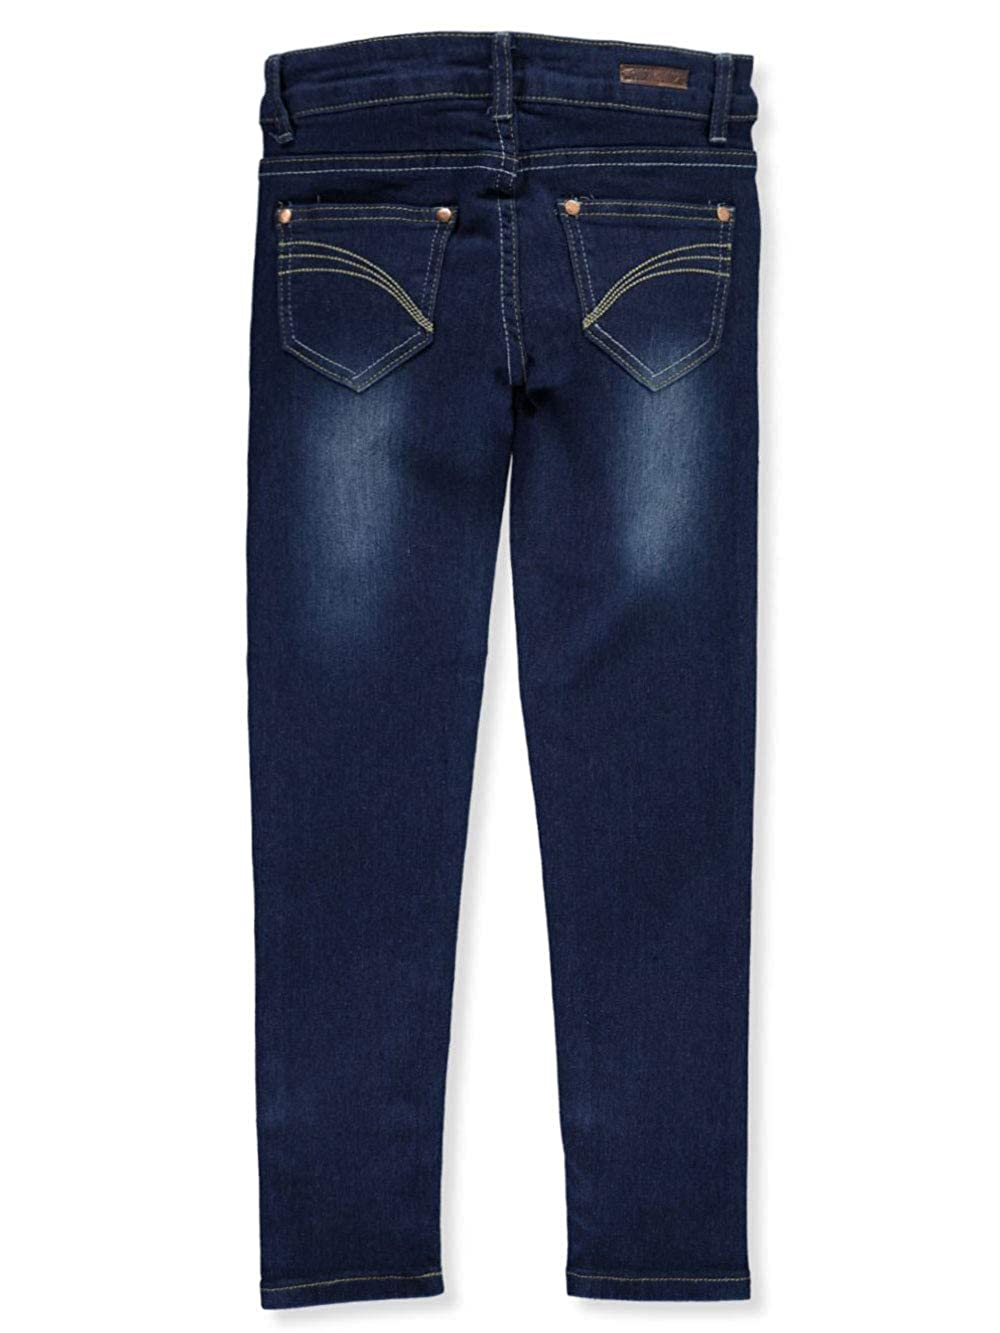 City Ink Girls Jeans